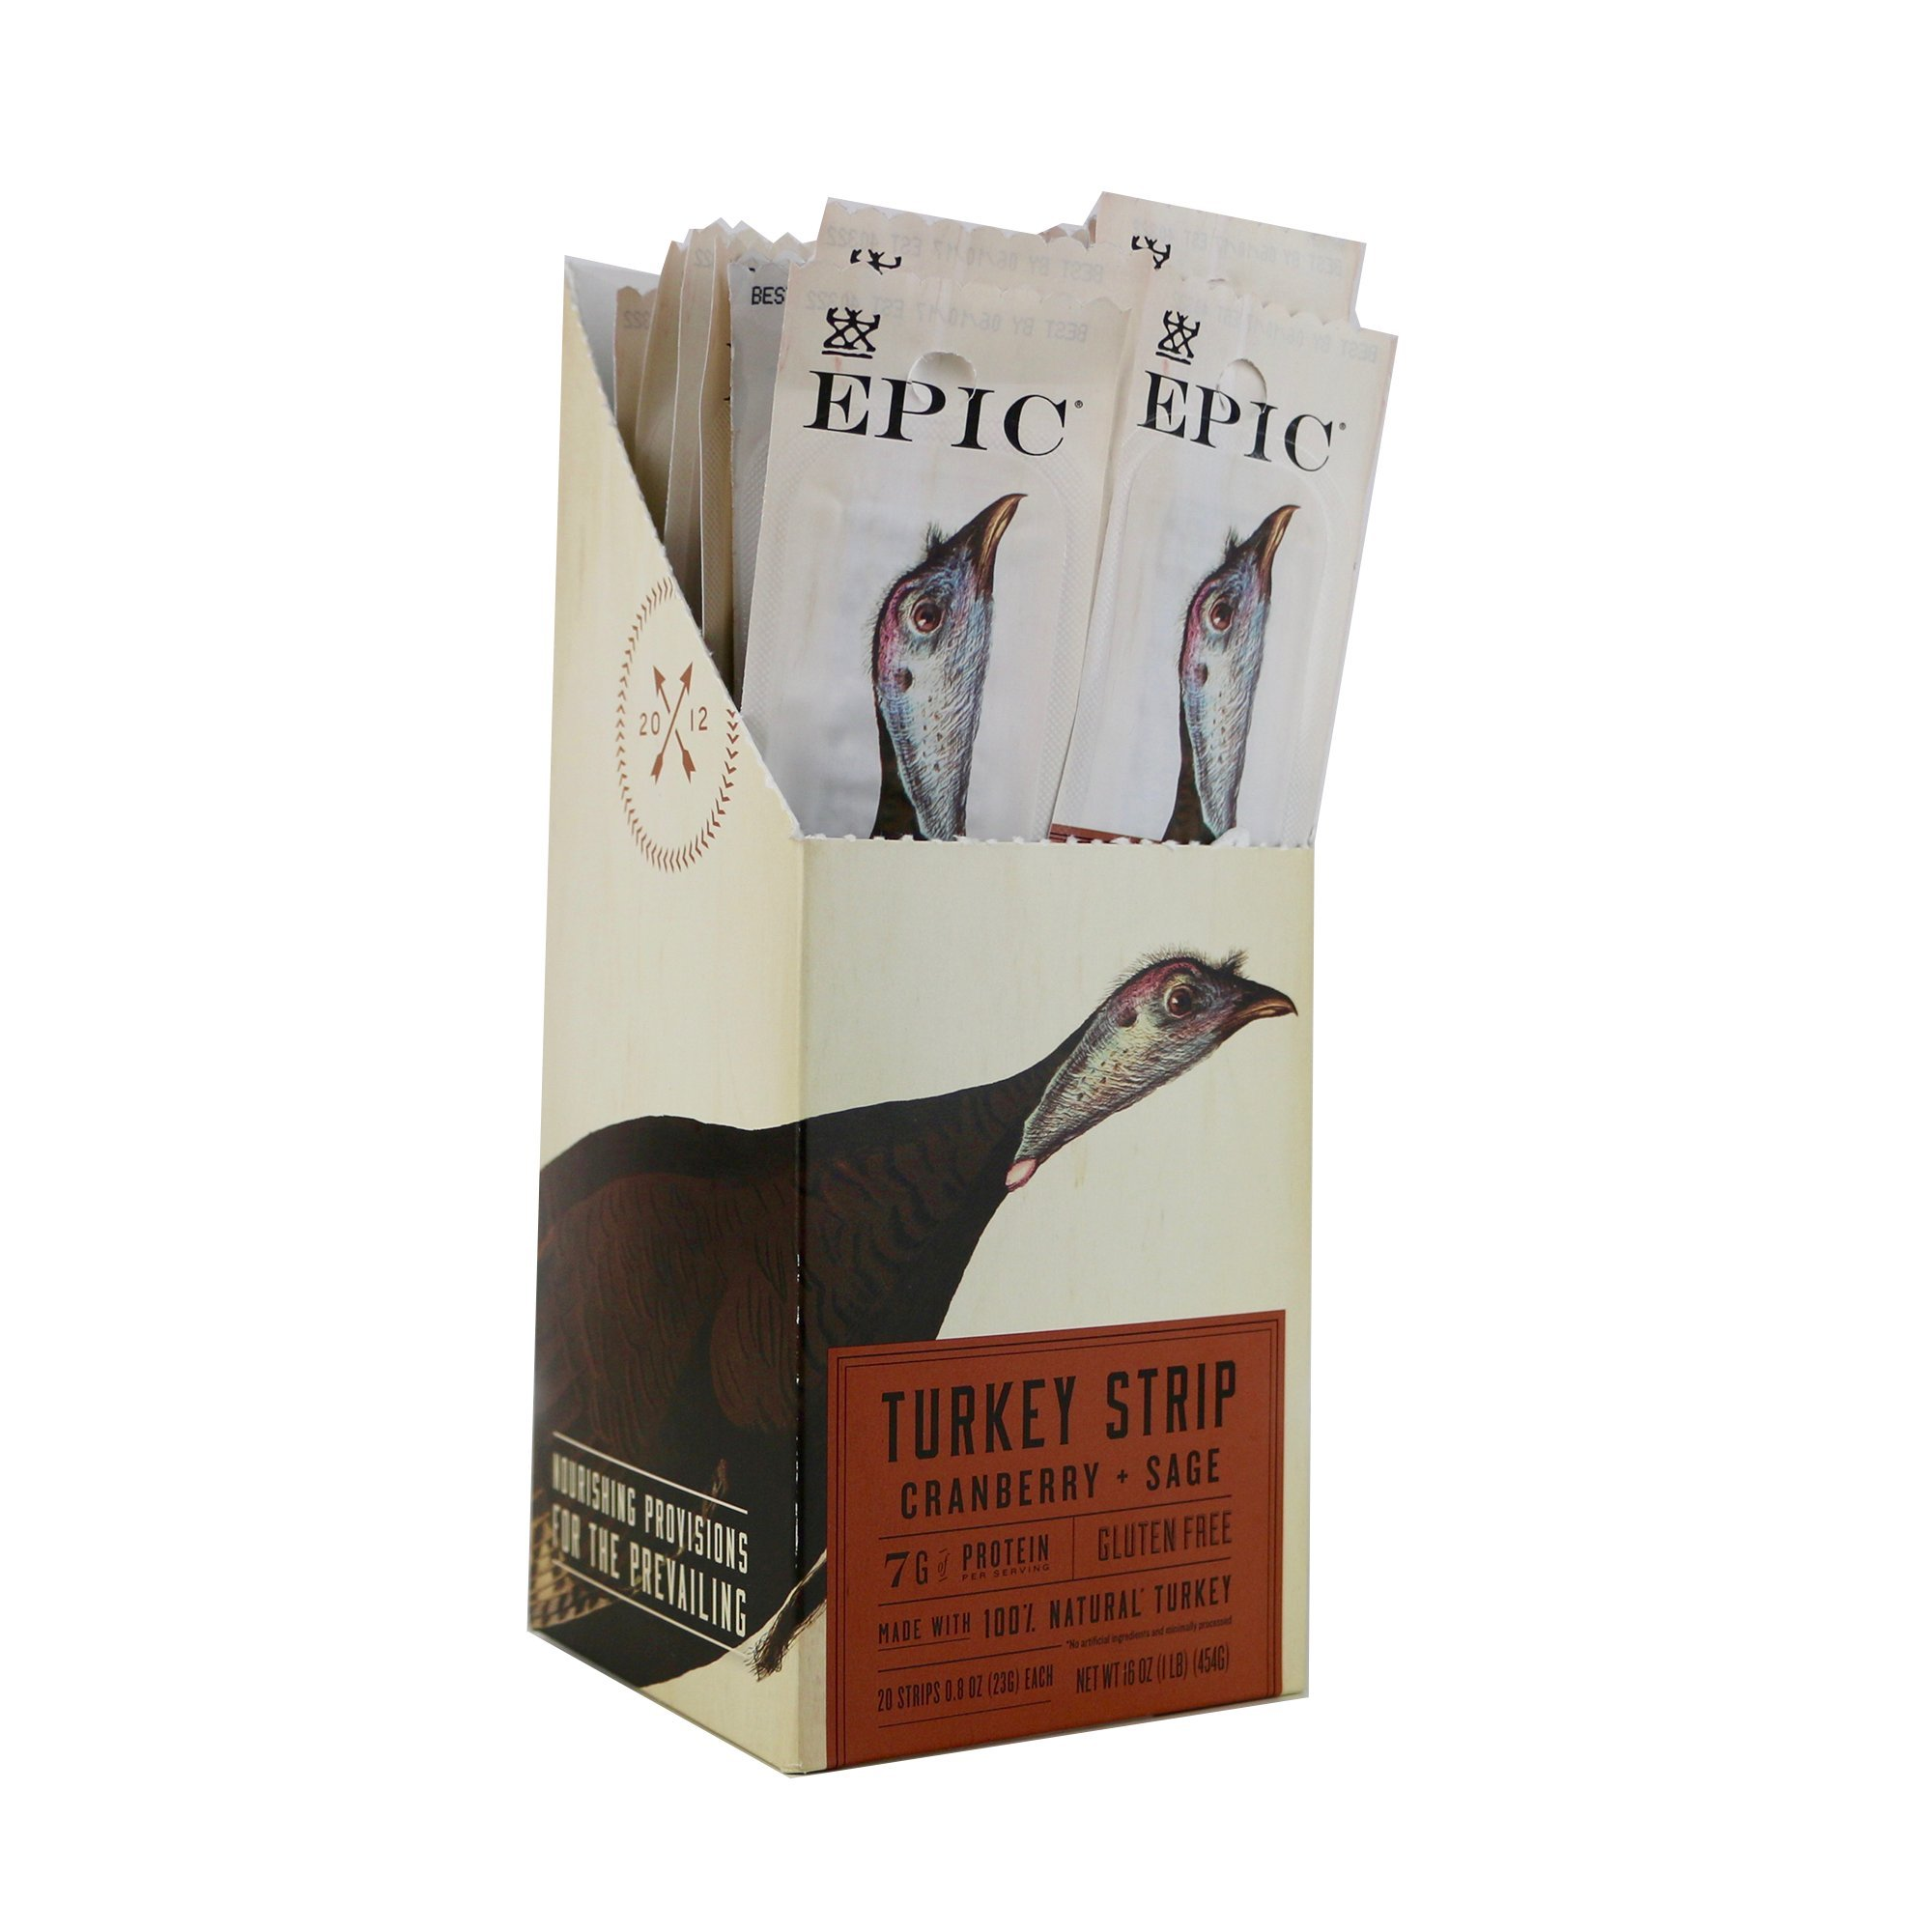 Epic 100% Natural Turkey Steak, Cranberry & Sage Strip, 0.8 Ounce (Pack Of 20)